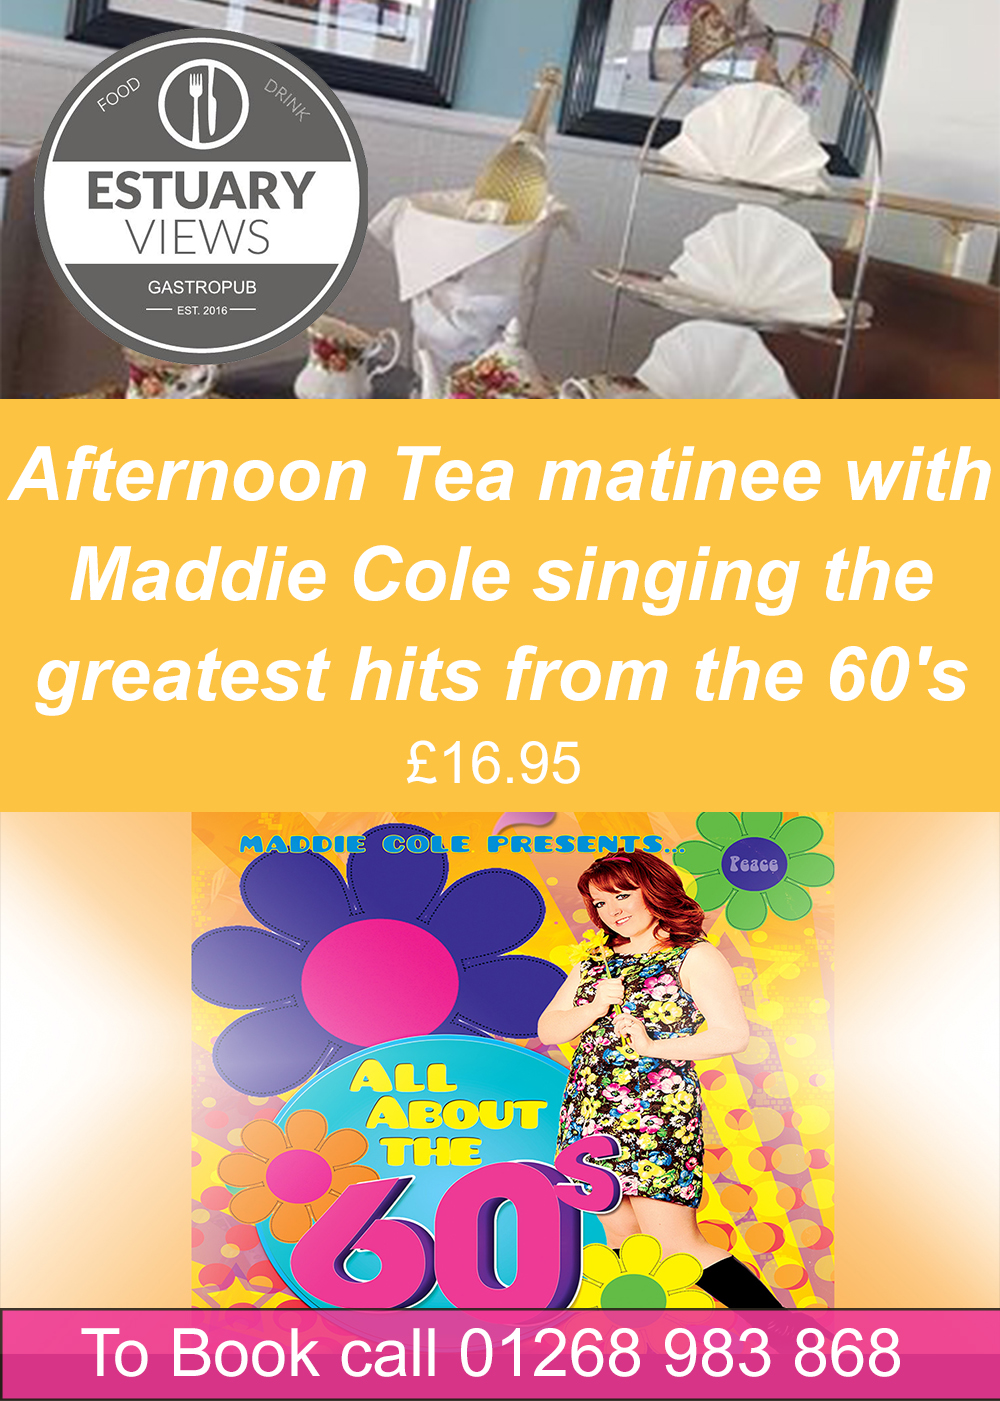 Afternoon Tea Matinee with Maddie Cole